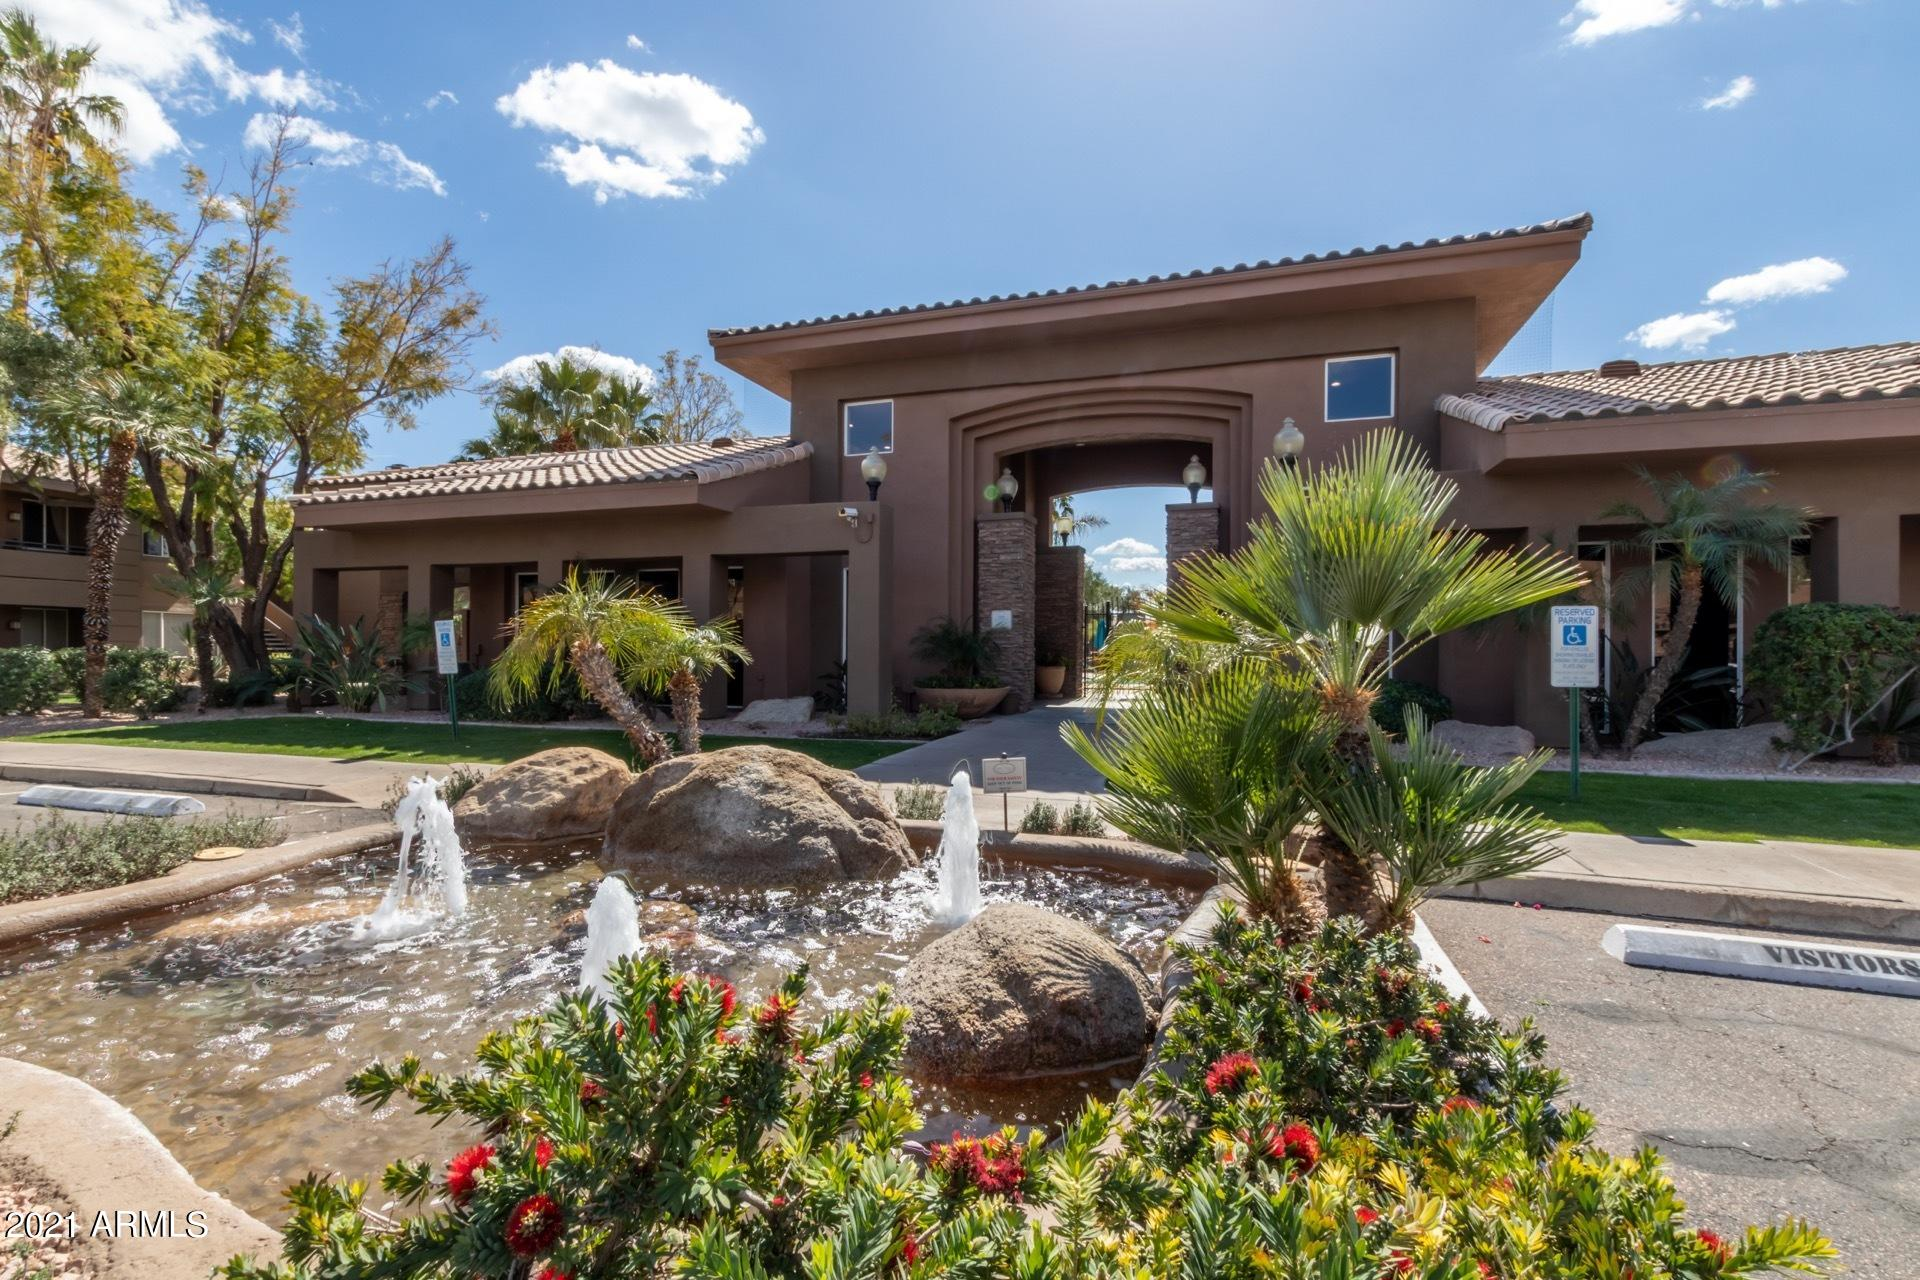 7009 E ACOMA Drive # 2173, Scottsdale, AZ 85254, 2 Bedrooms Bedrooms, ,Residential Lease,For Rent,7009 E ACOMA Drive # 2173,6203276